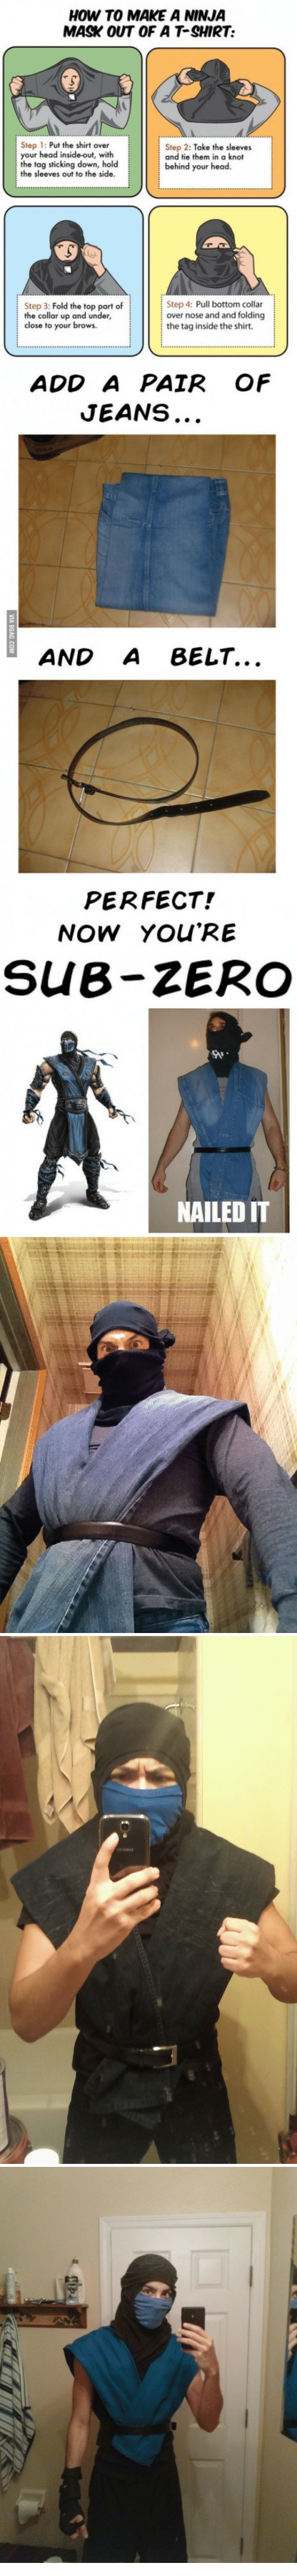 Sub-Zero: HOW TO MAKE A NINJA  MASK OUT OF A T-SHIRT:  Step 1: Put the shirt over  your head inside-out, with  the tag sticking down, hold  the sleeves out to the side  Step 2: Take the sleeves  and tie them in a knot  behind your head  Step 3: Fold the top part of  the collar up and under,  close to your brows.  Step 4: Pull bottom collar  over nose and and folding  the tag inside the shirt.  ADD A PAIR OF  JEANS  AND A BELT...  PERFECT!  NOW YOU'RE  SUB-ZERO  骑,  NAILED IT